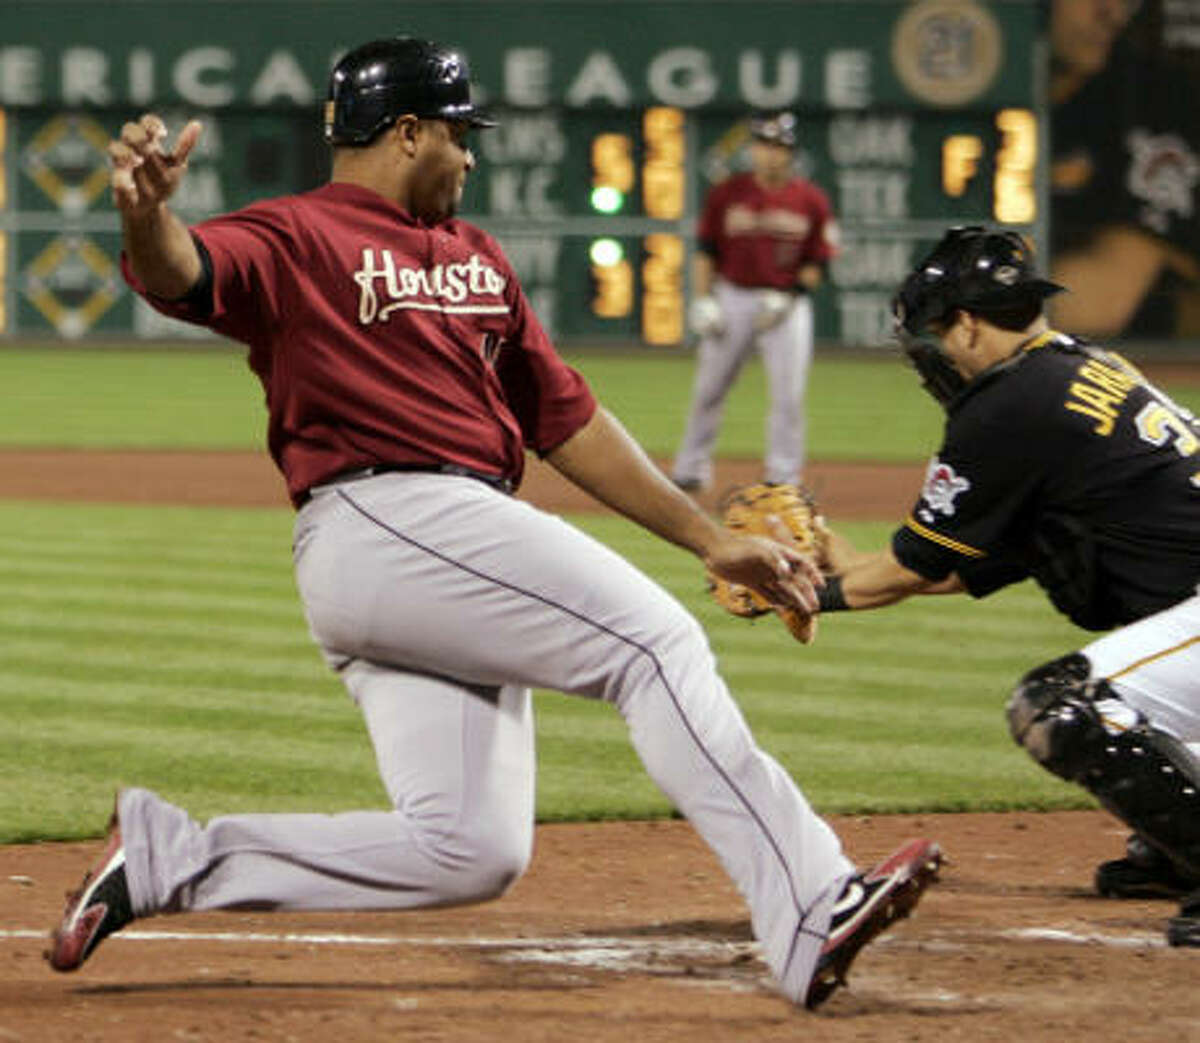 Houston's Carlos Lee scores as Pirates catcher Jason Jaramillo waits for the throw on a base hit by Ivan Rodriguez in the seventh inning.